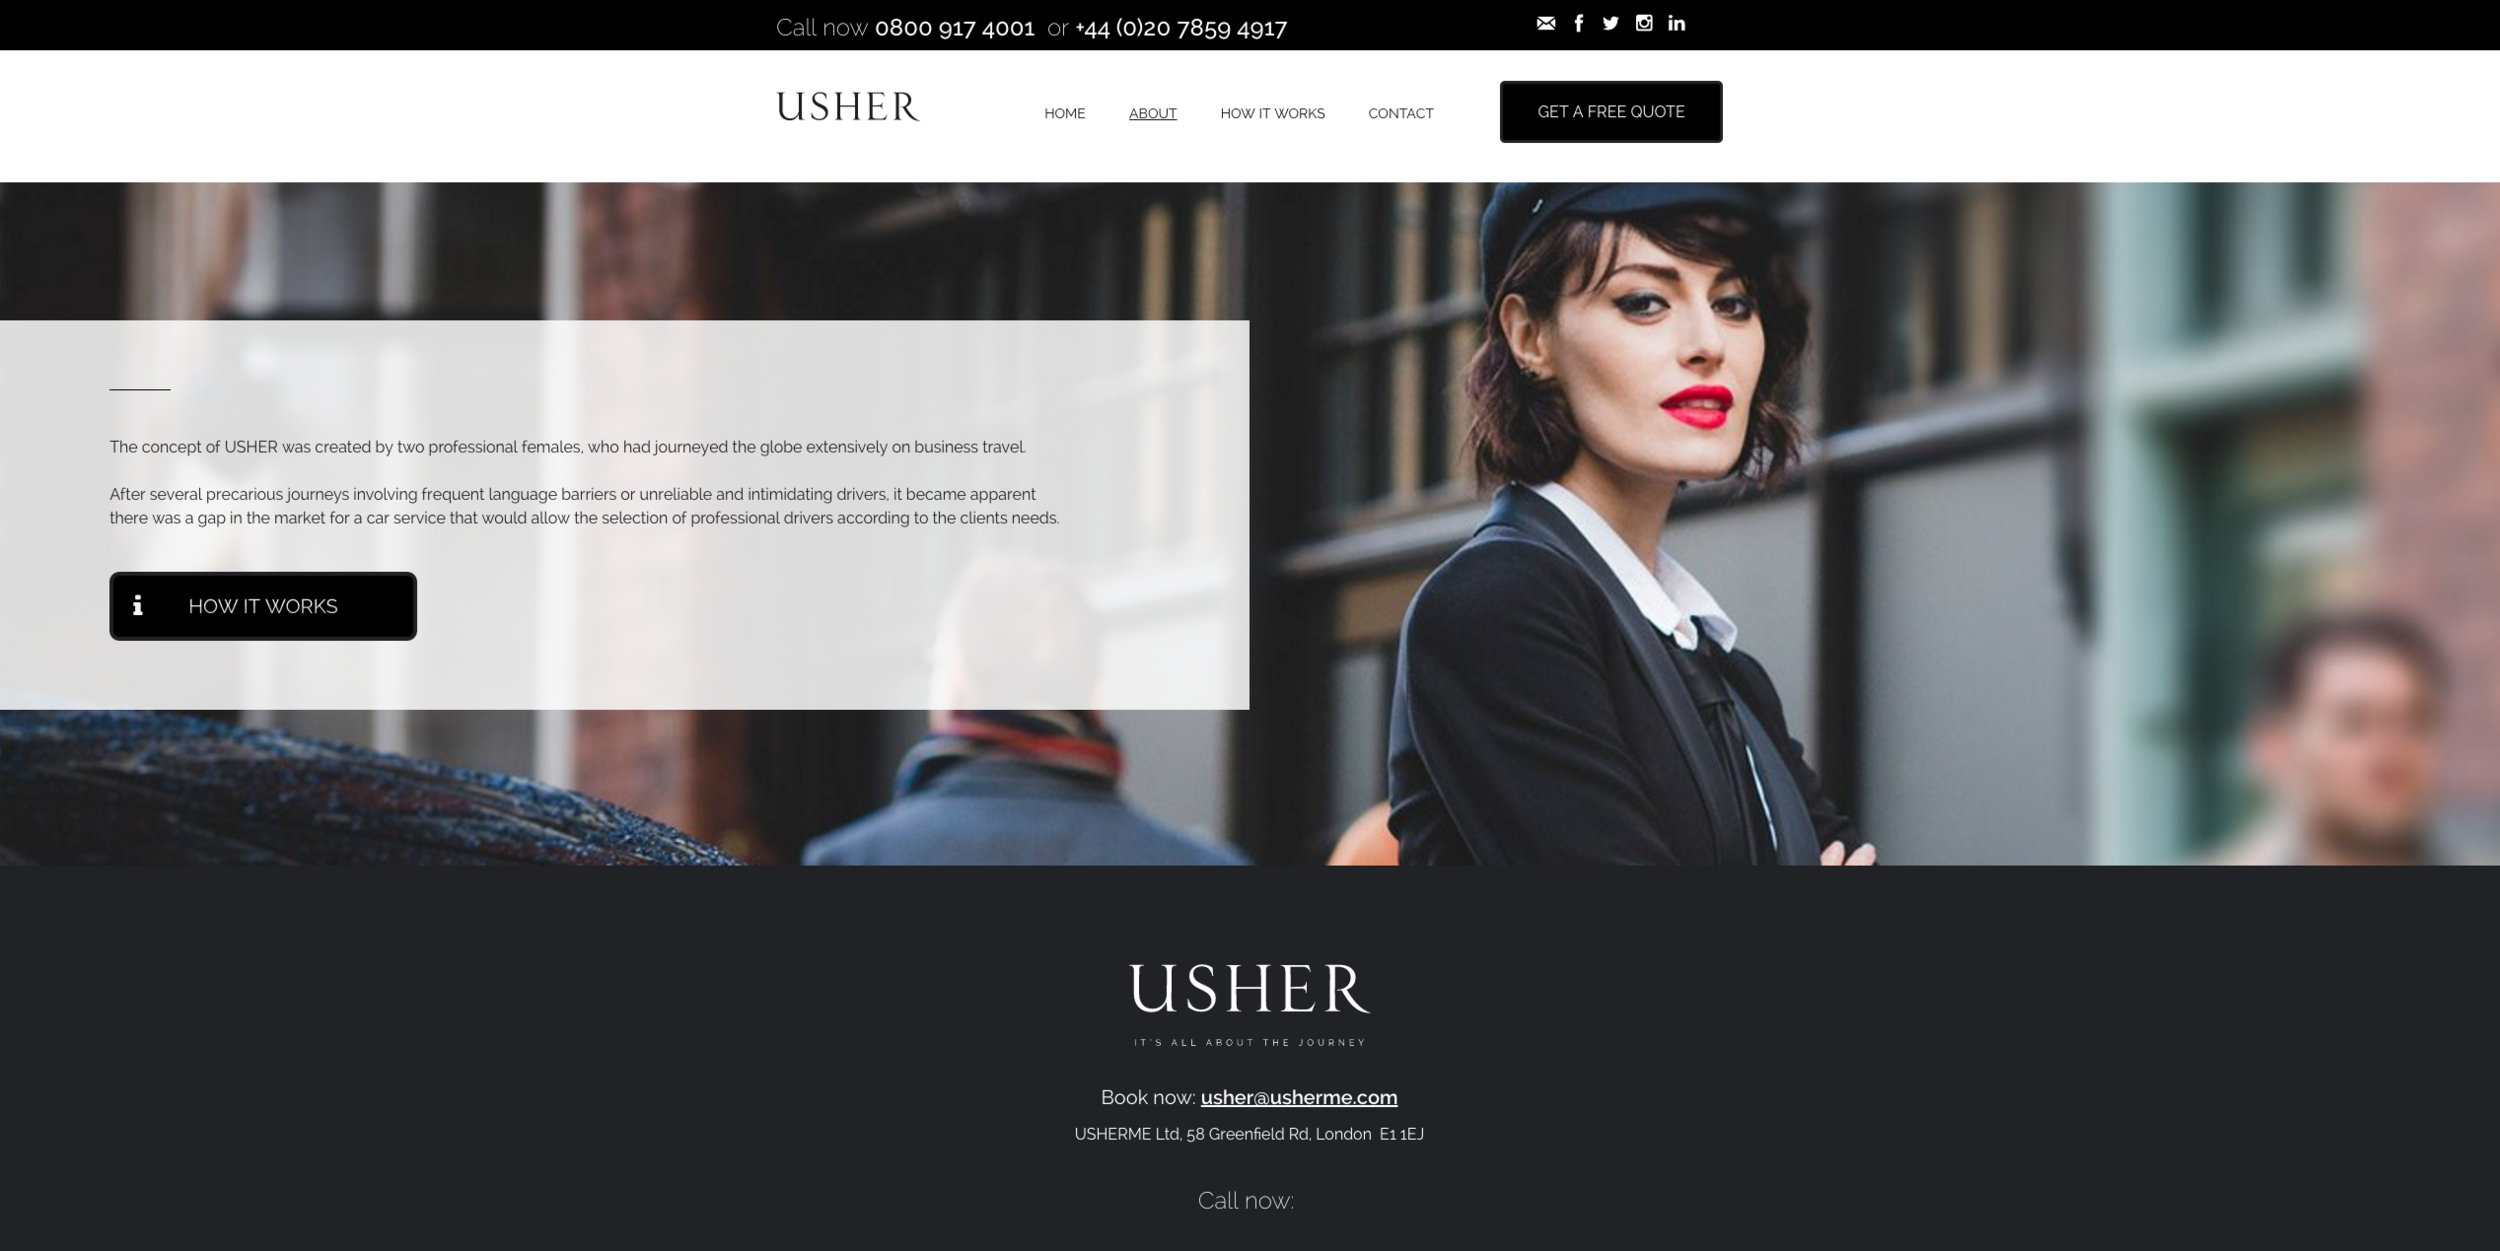 Advertising Photography for Usher